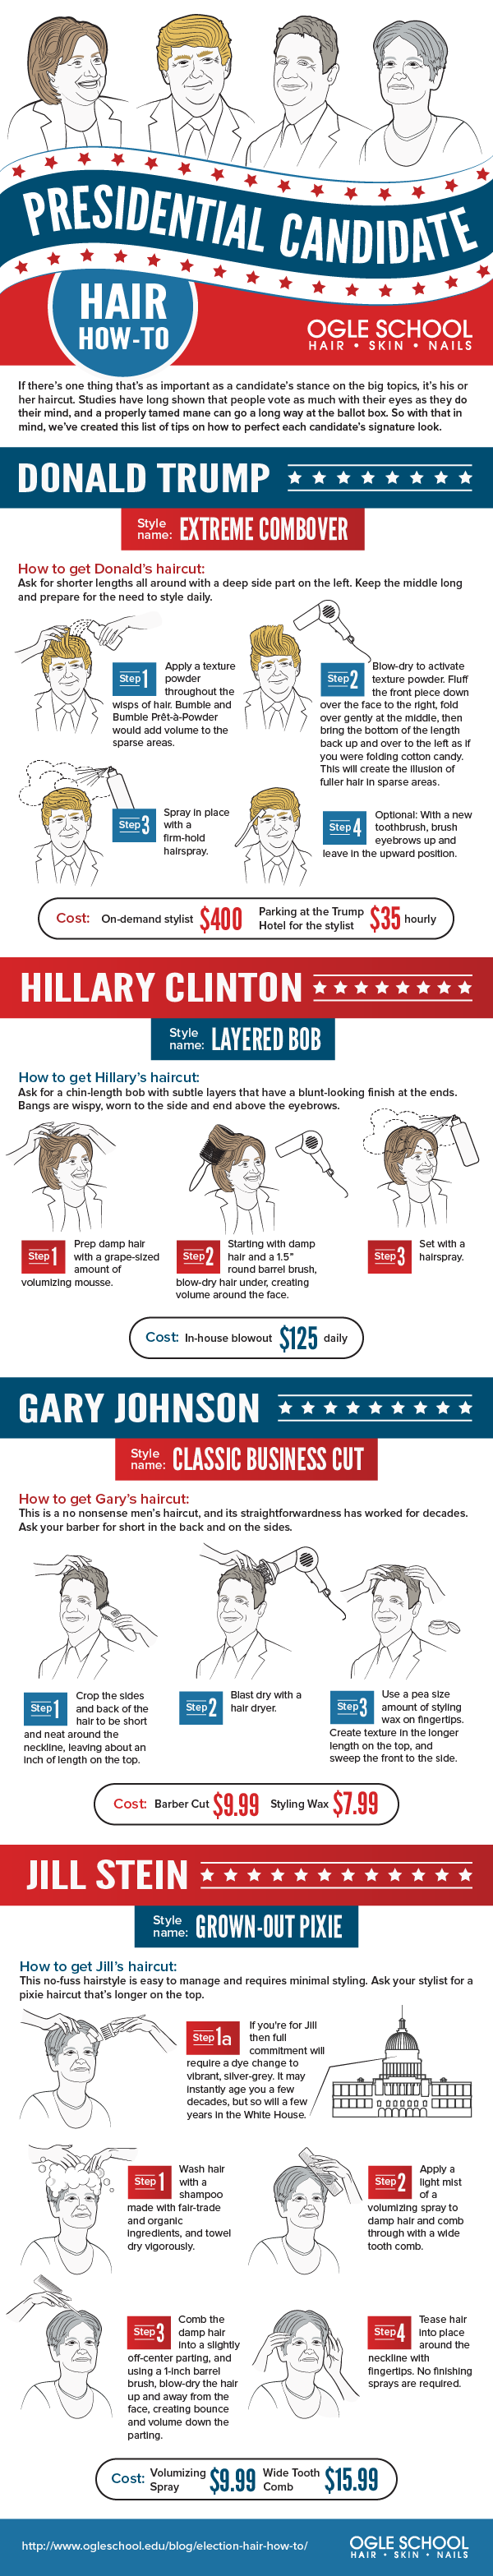 Presidential Election Hair How-To